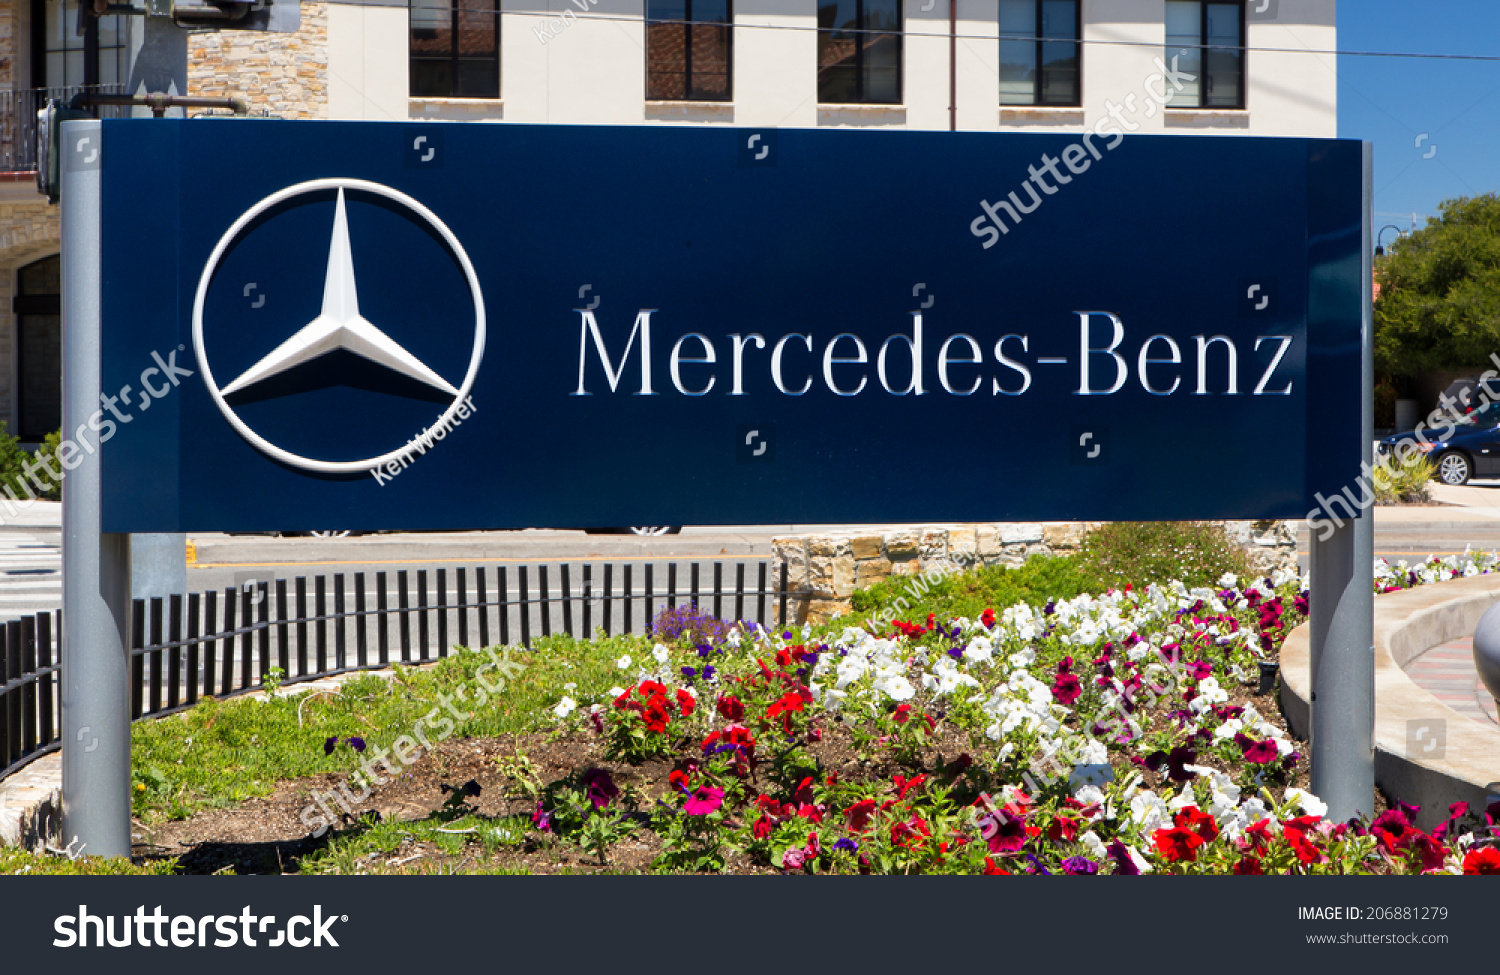 Monterey ca usa july 23 2014 mercedes benz automobile for Mercedes benz of monterey monterey ca